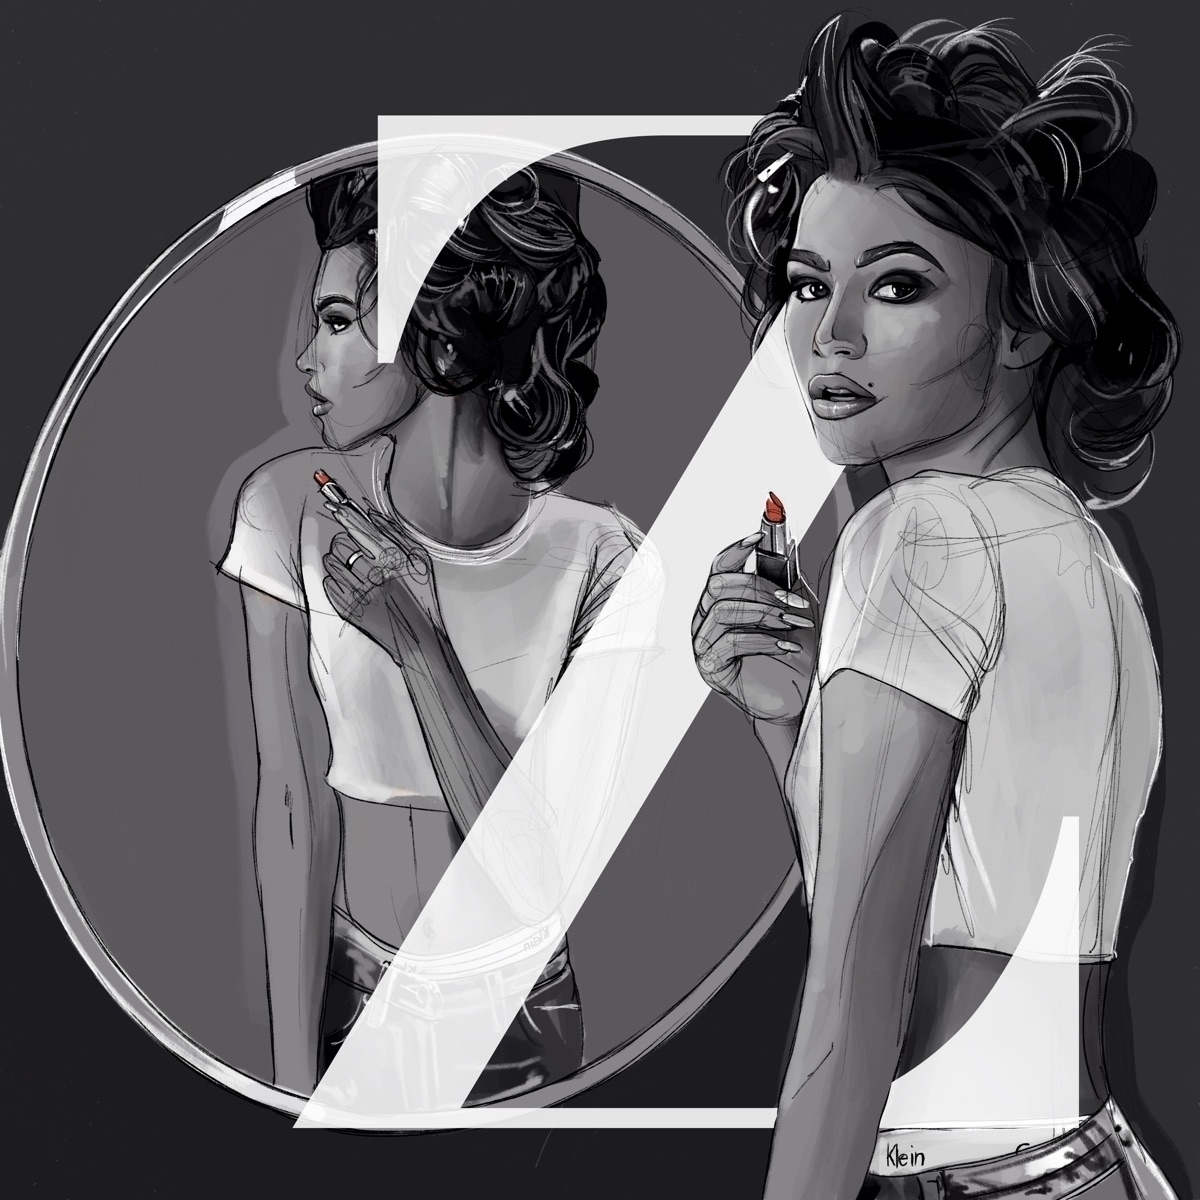 Zendaya Illustration - zendaya, artwork - fmonroyr | ello